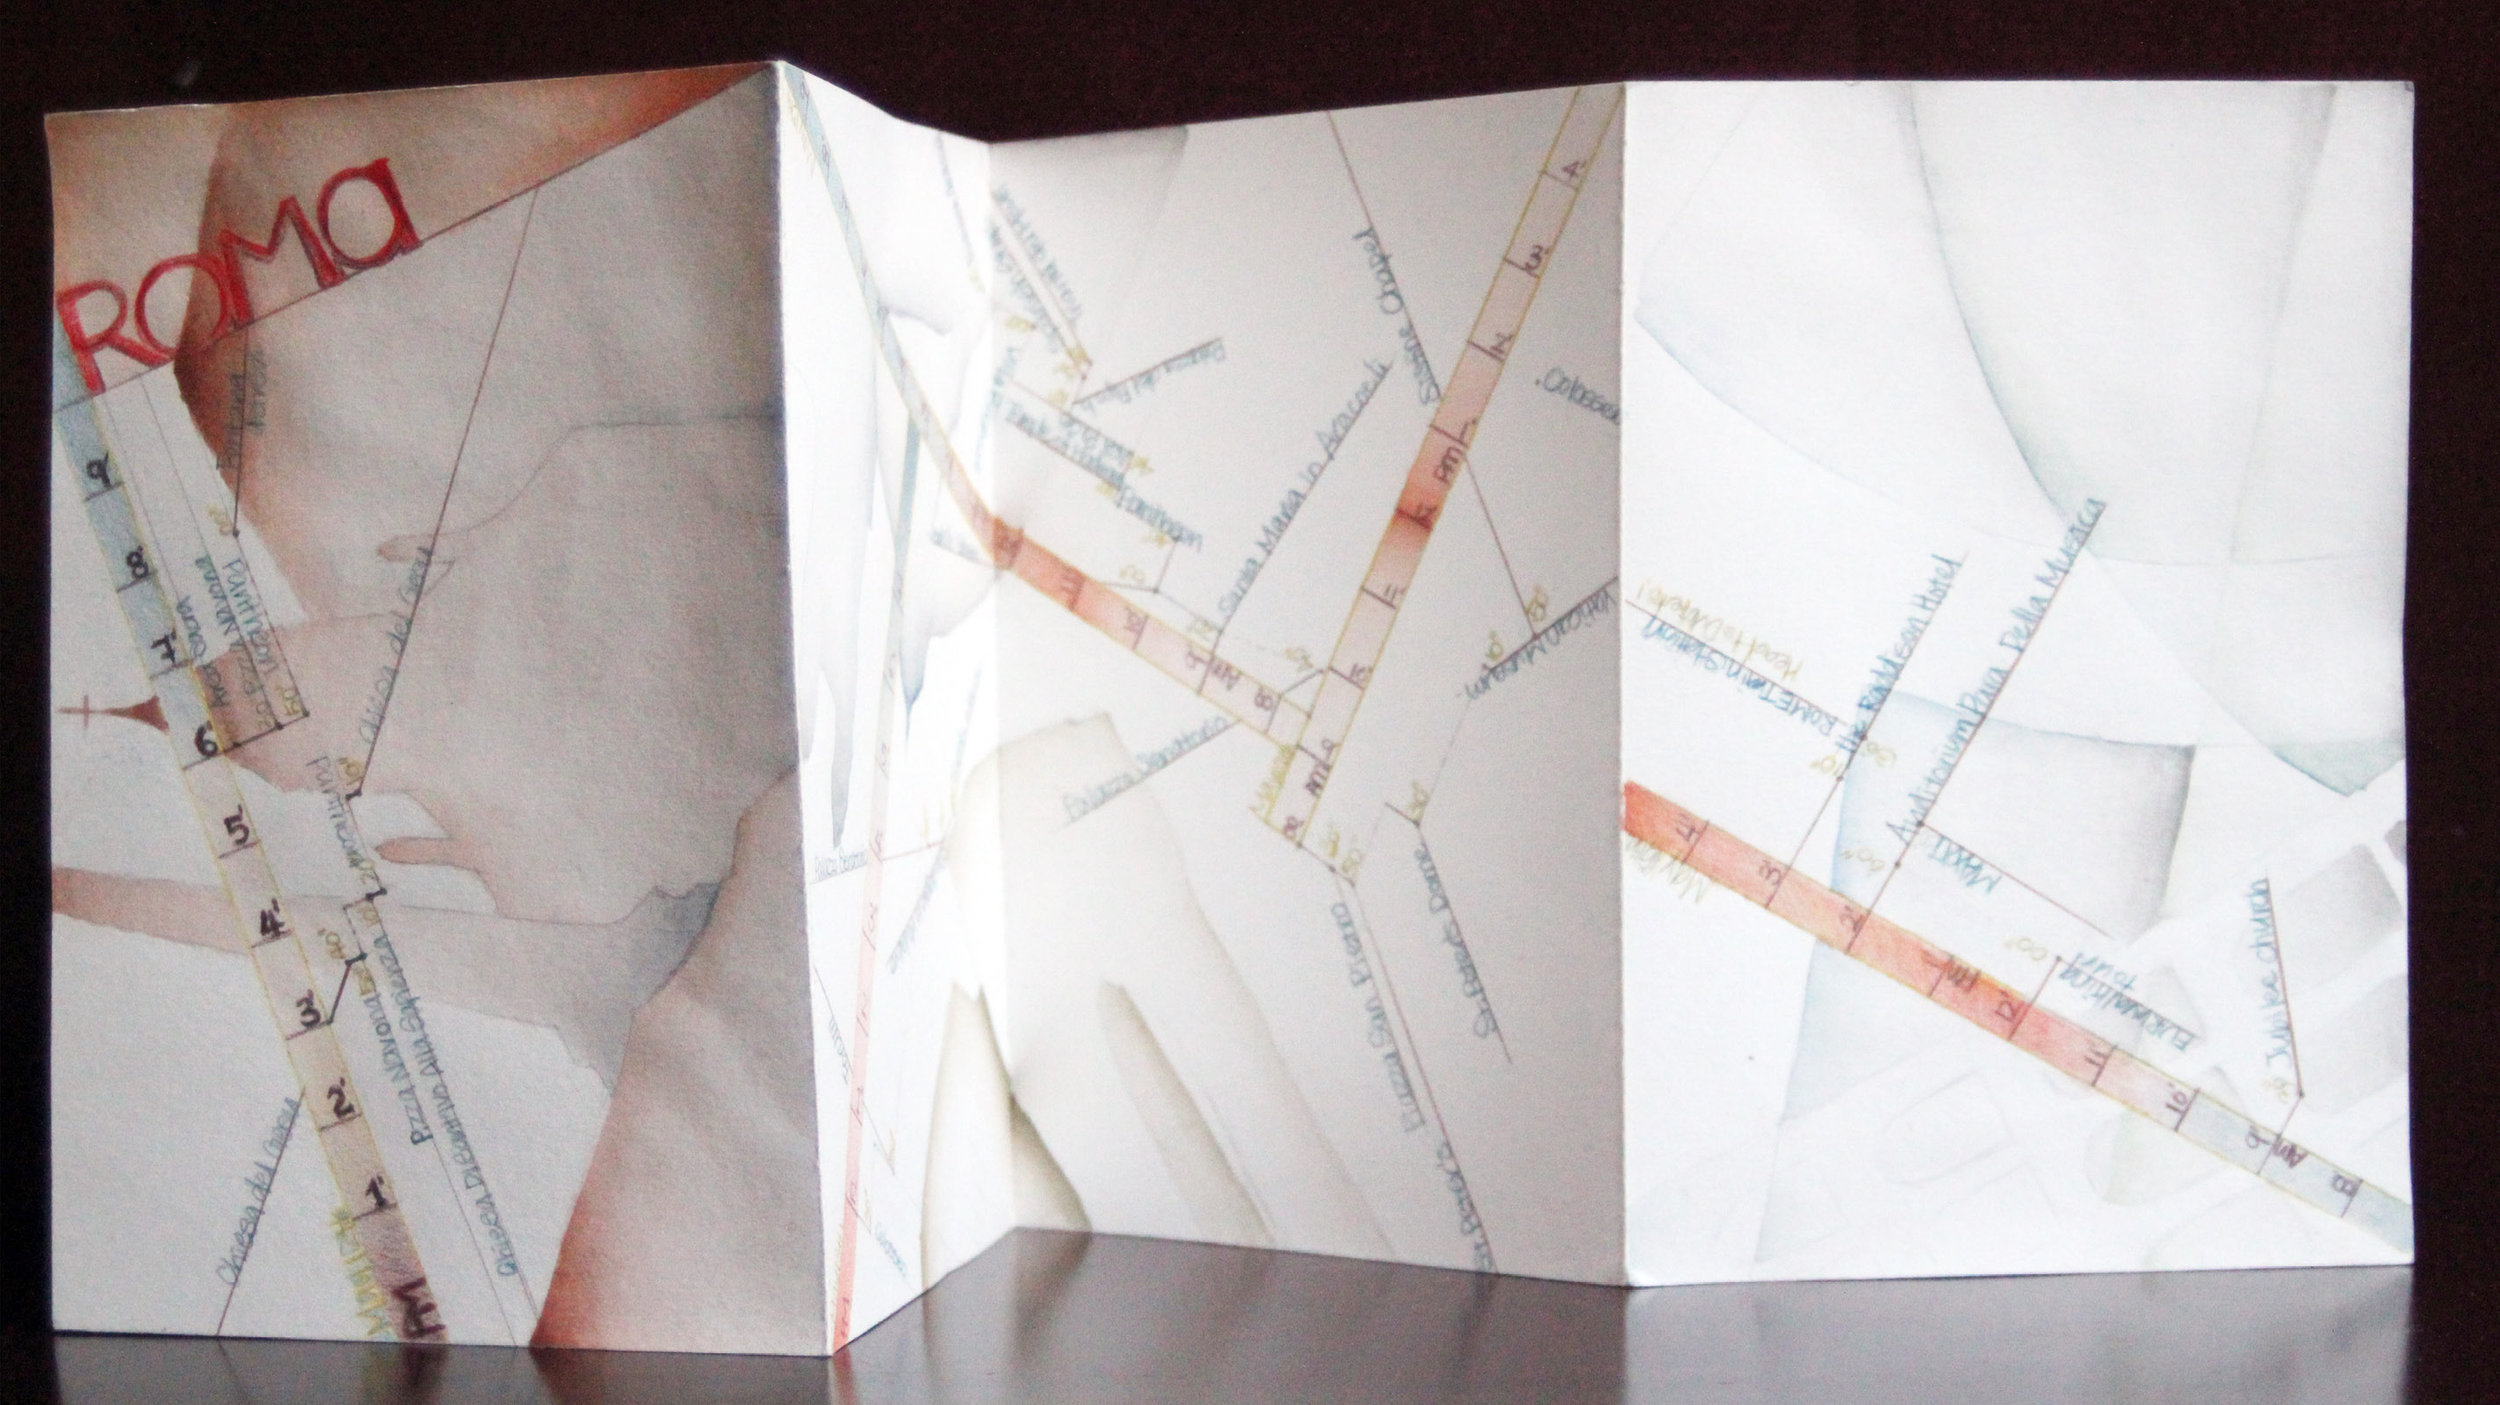 Rome experiential map by Sharon Peng